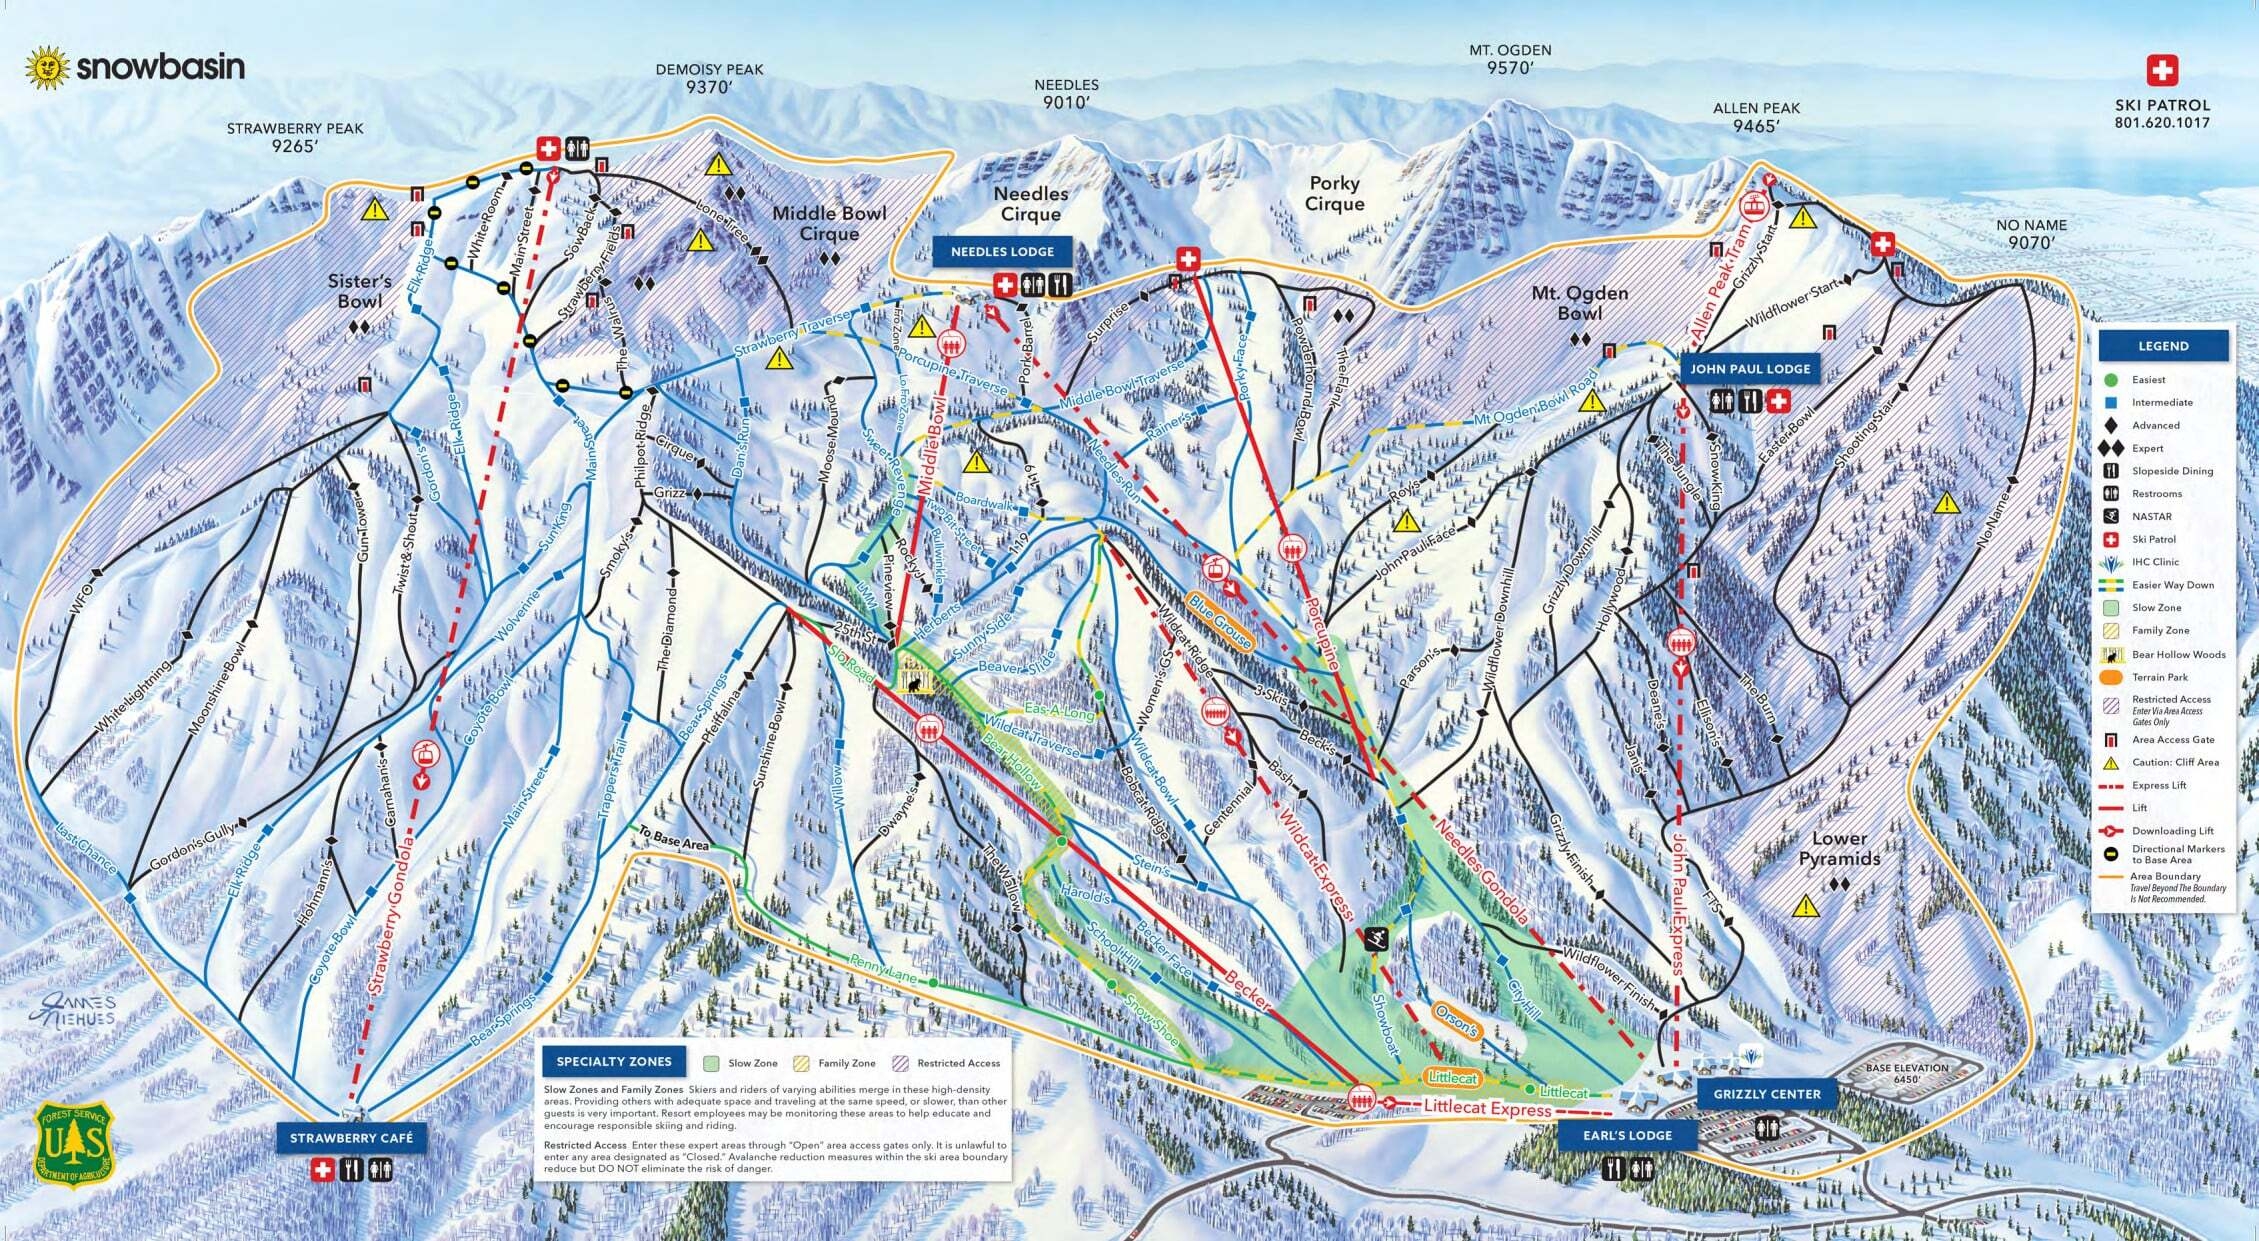 Snowbasin Piste / Trail Map